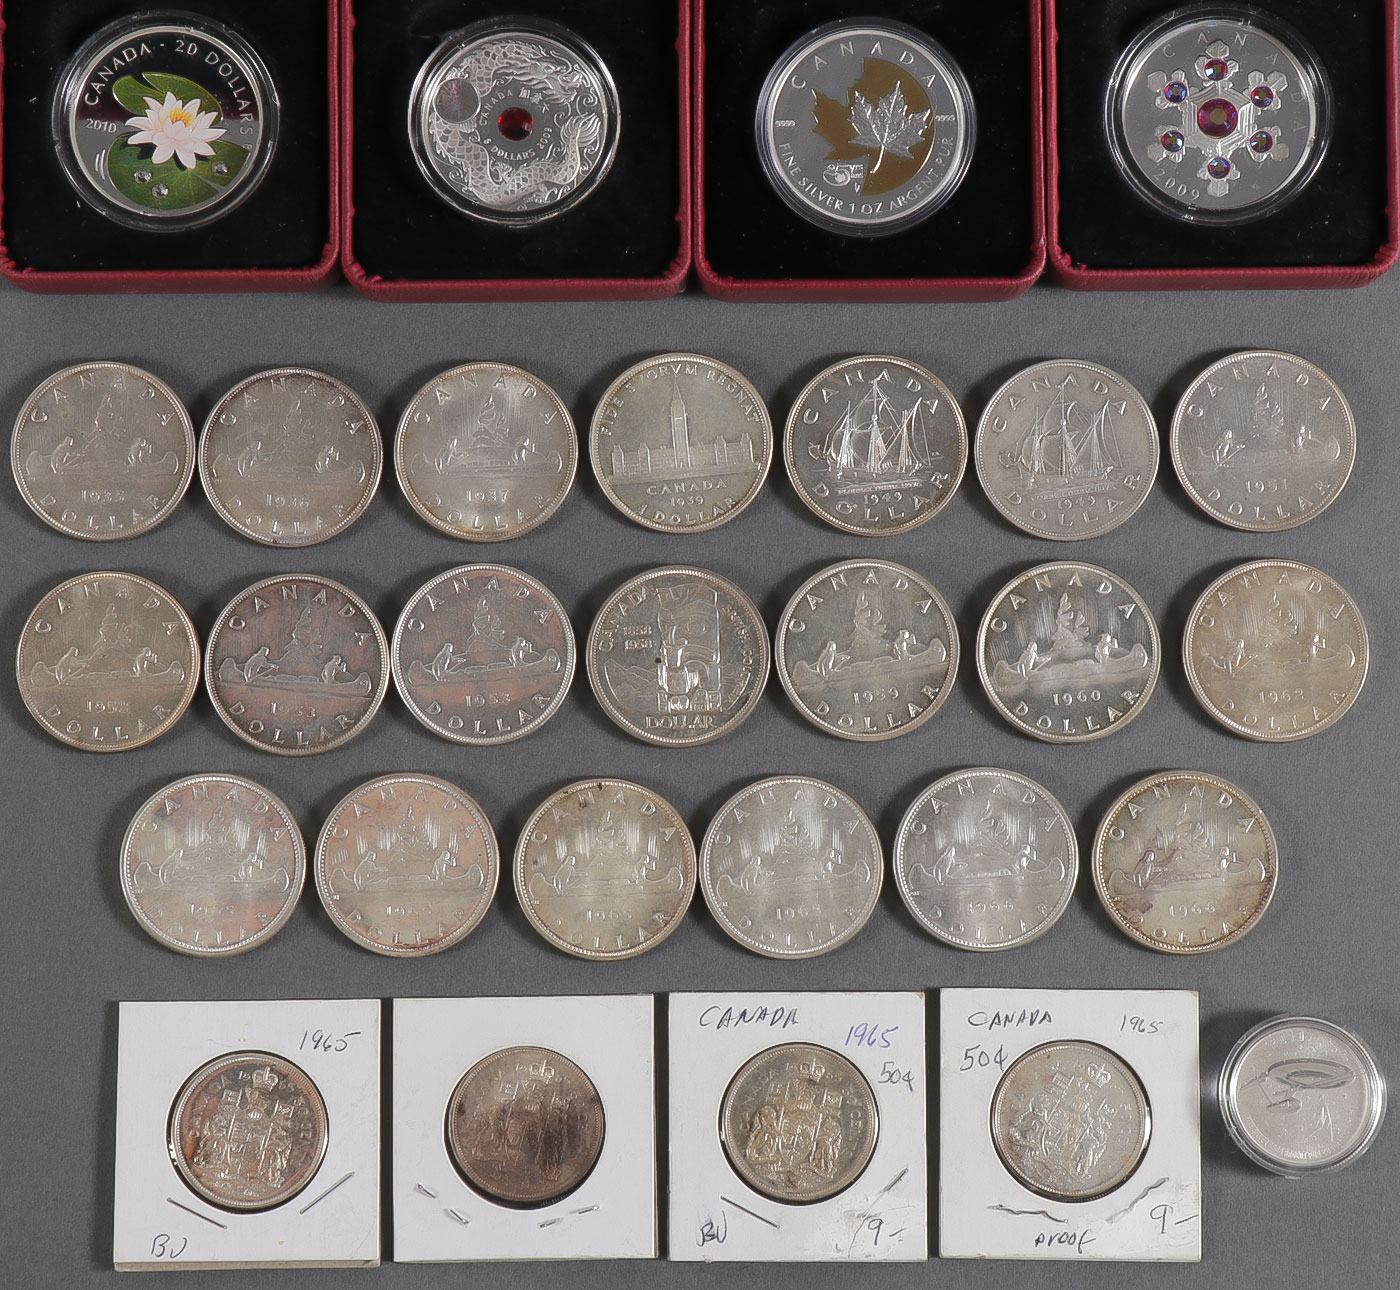 Lot 494 - 29 CANADIAN SILVER SPECIMENS